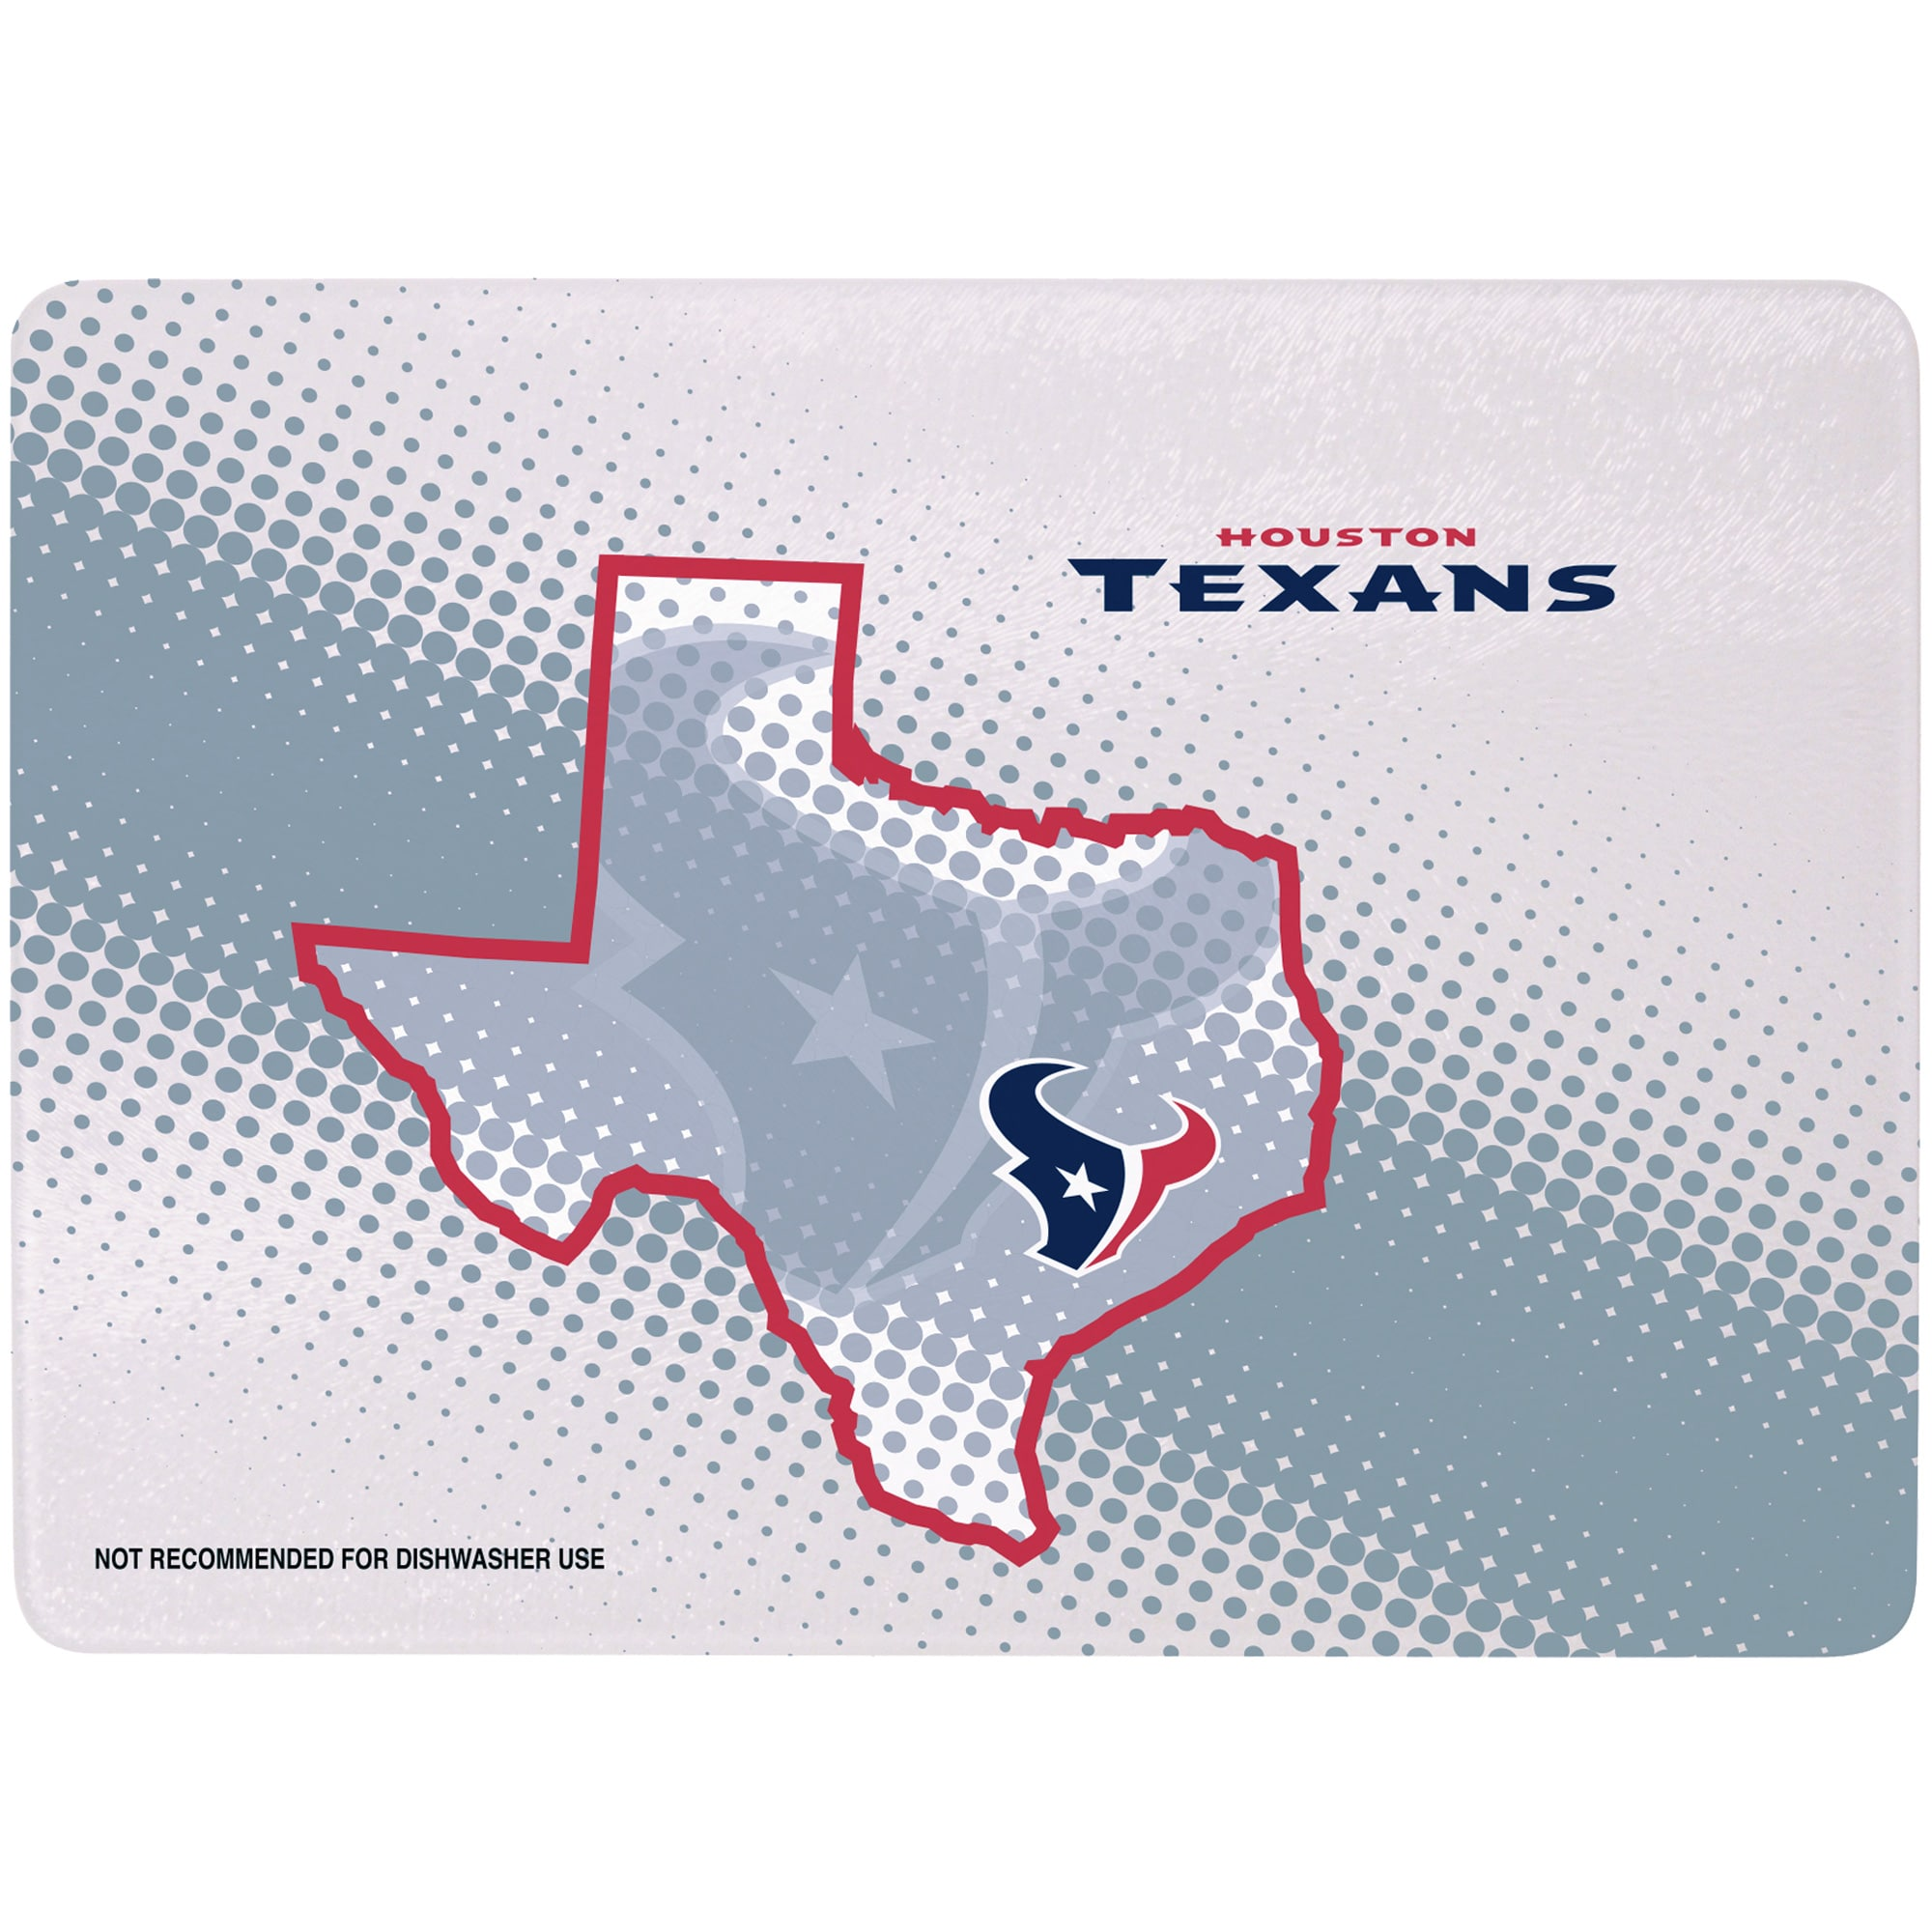 """Houston Texans 8"""" x 11.75"""" State of Mind Cutting board"""